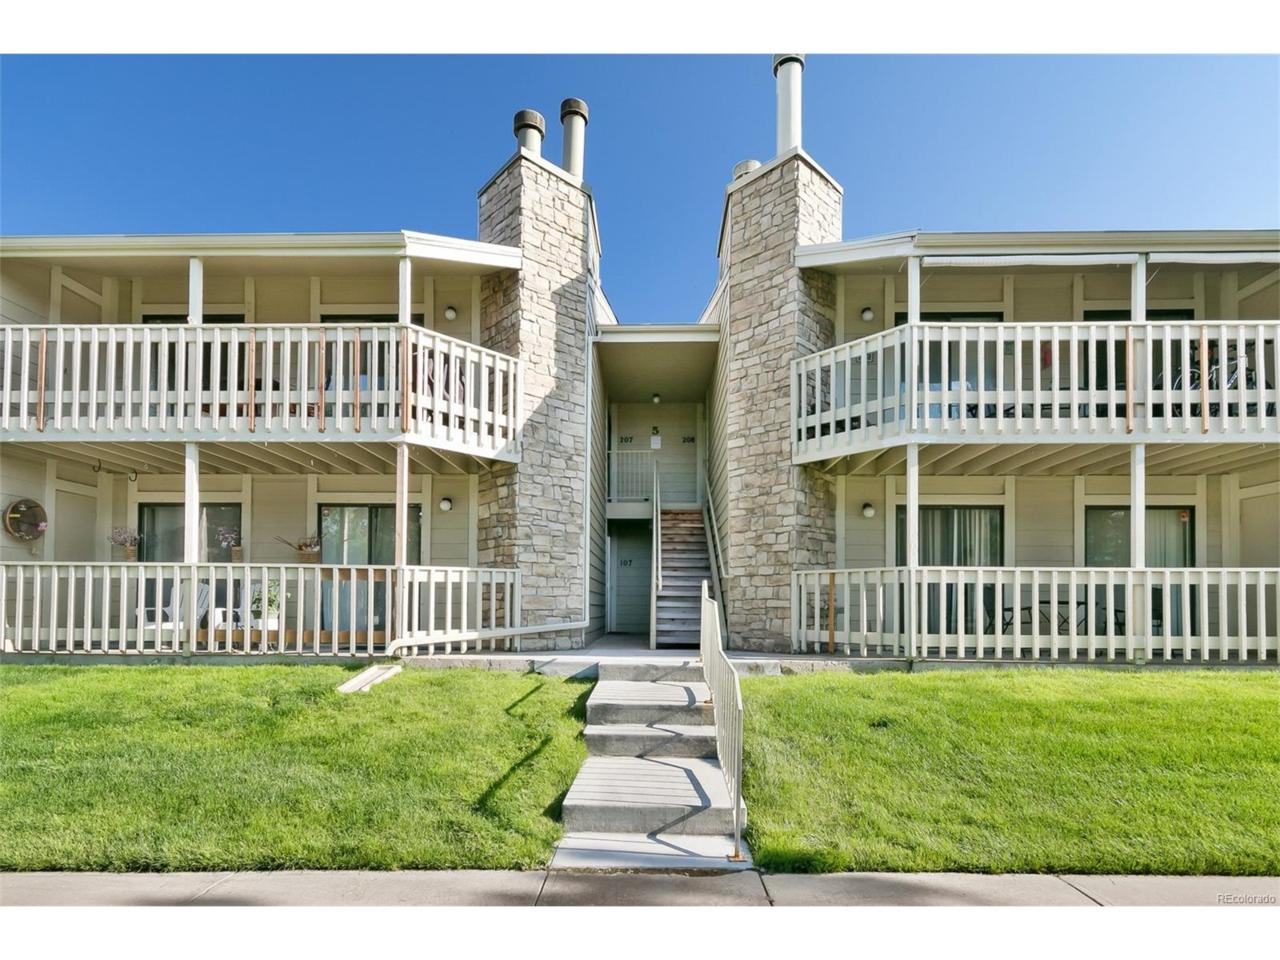 8225 Fairmount Drive 5-207, Denver, CO 80247 (MLS #4195853) :: 8z Real Estate